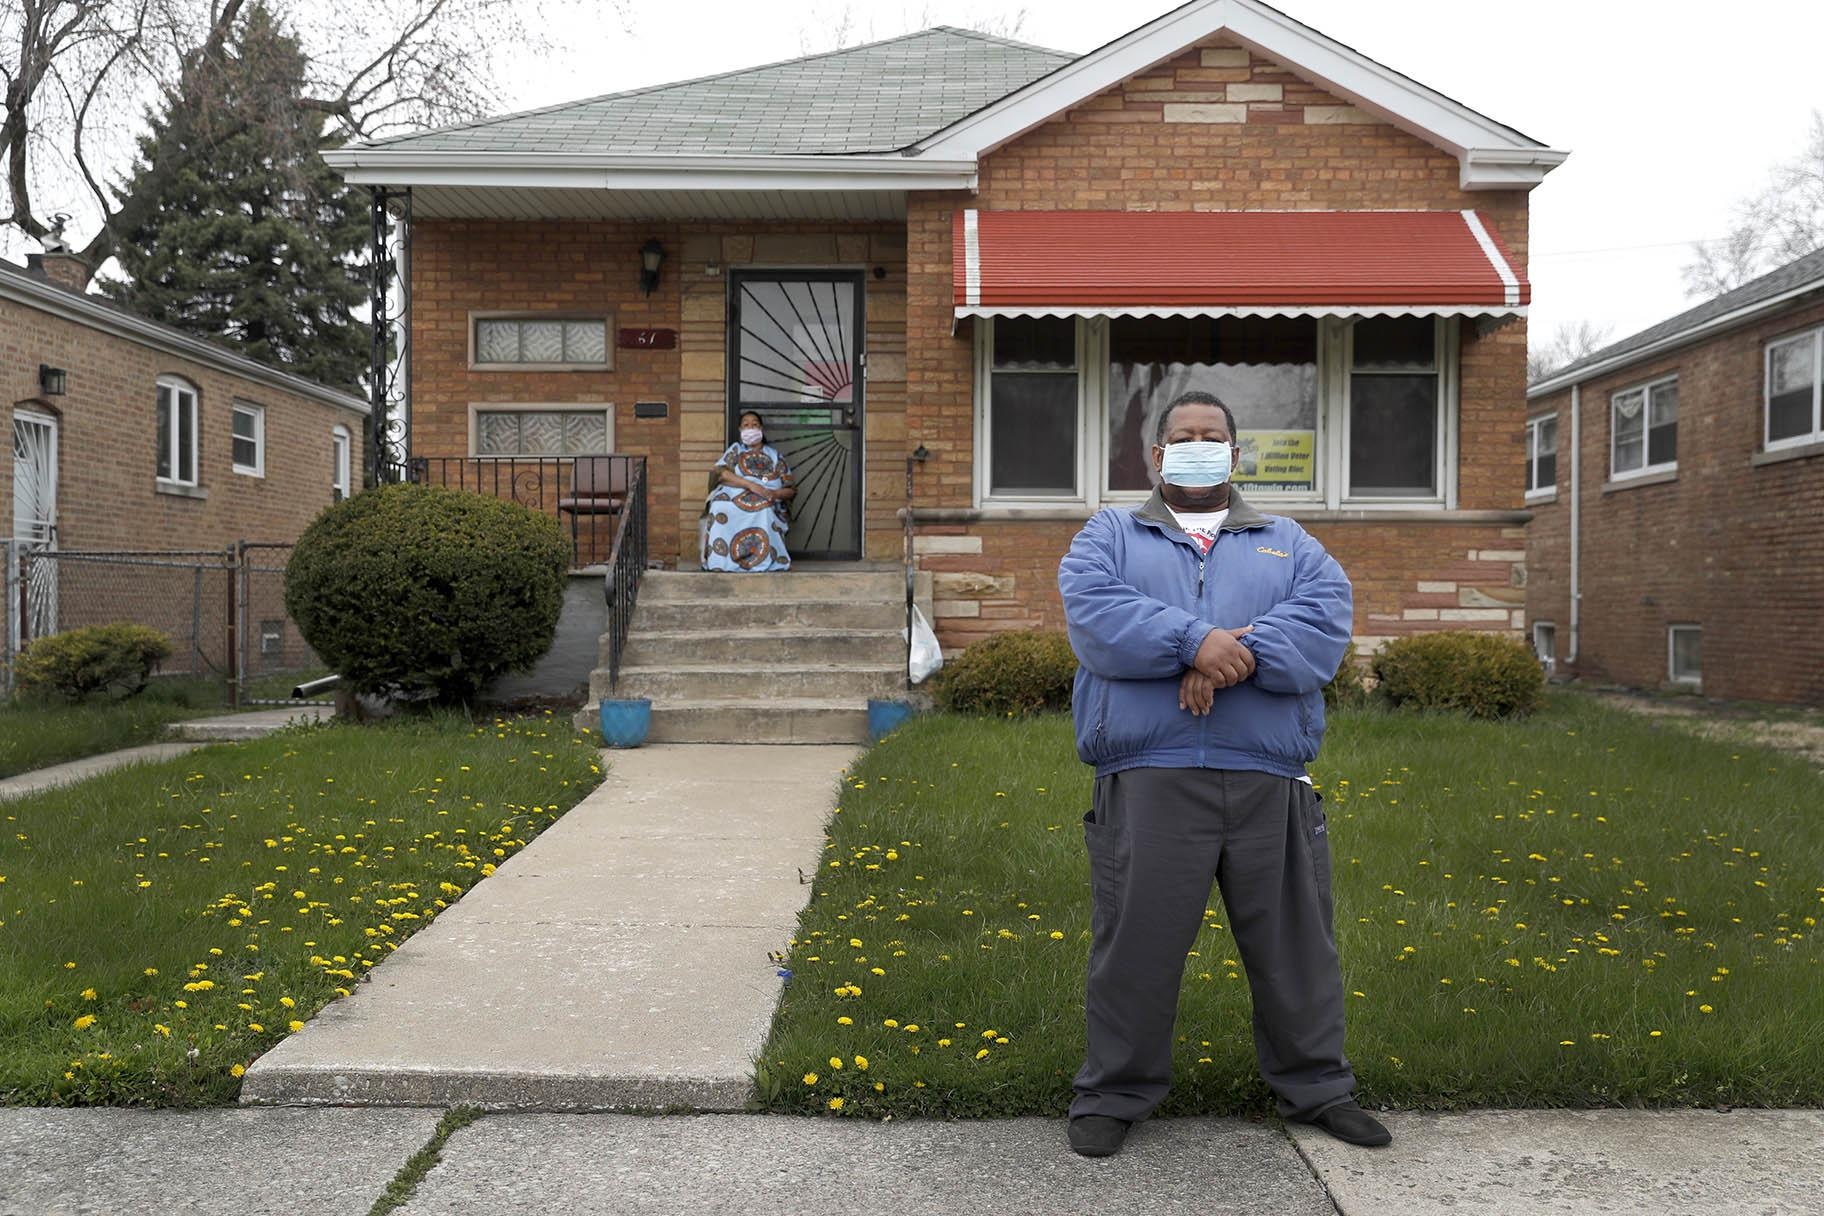 Anthony Travis, who has recovered from COVID-19 and lives with his sister, Jacqueline K. Johnson, background, and an adult daughter, poses for a portrait outside his Riverdale, Ill., home on Thursday, April 23, 2020. (AP Photo / Charles Rex Arbogast)